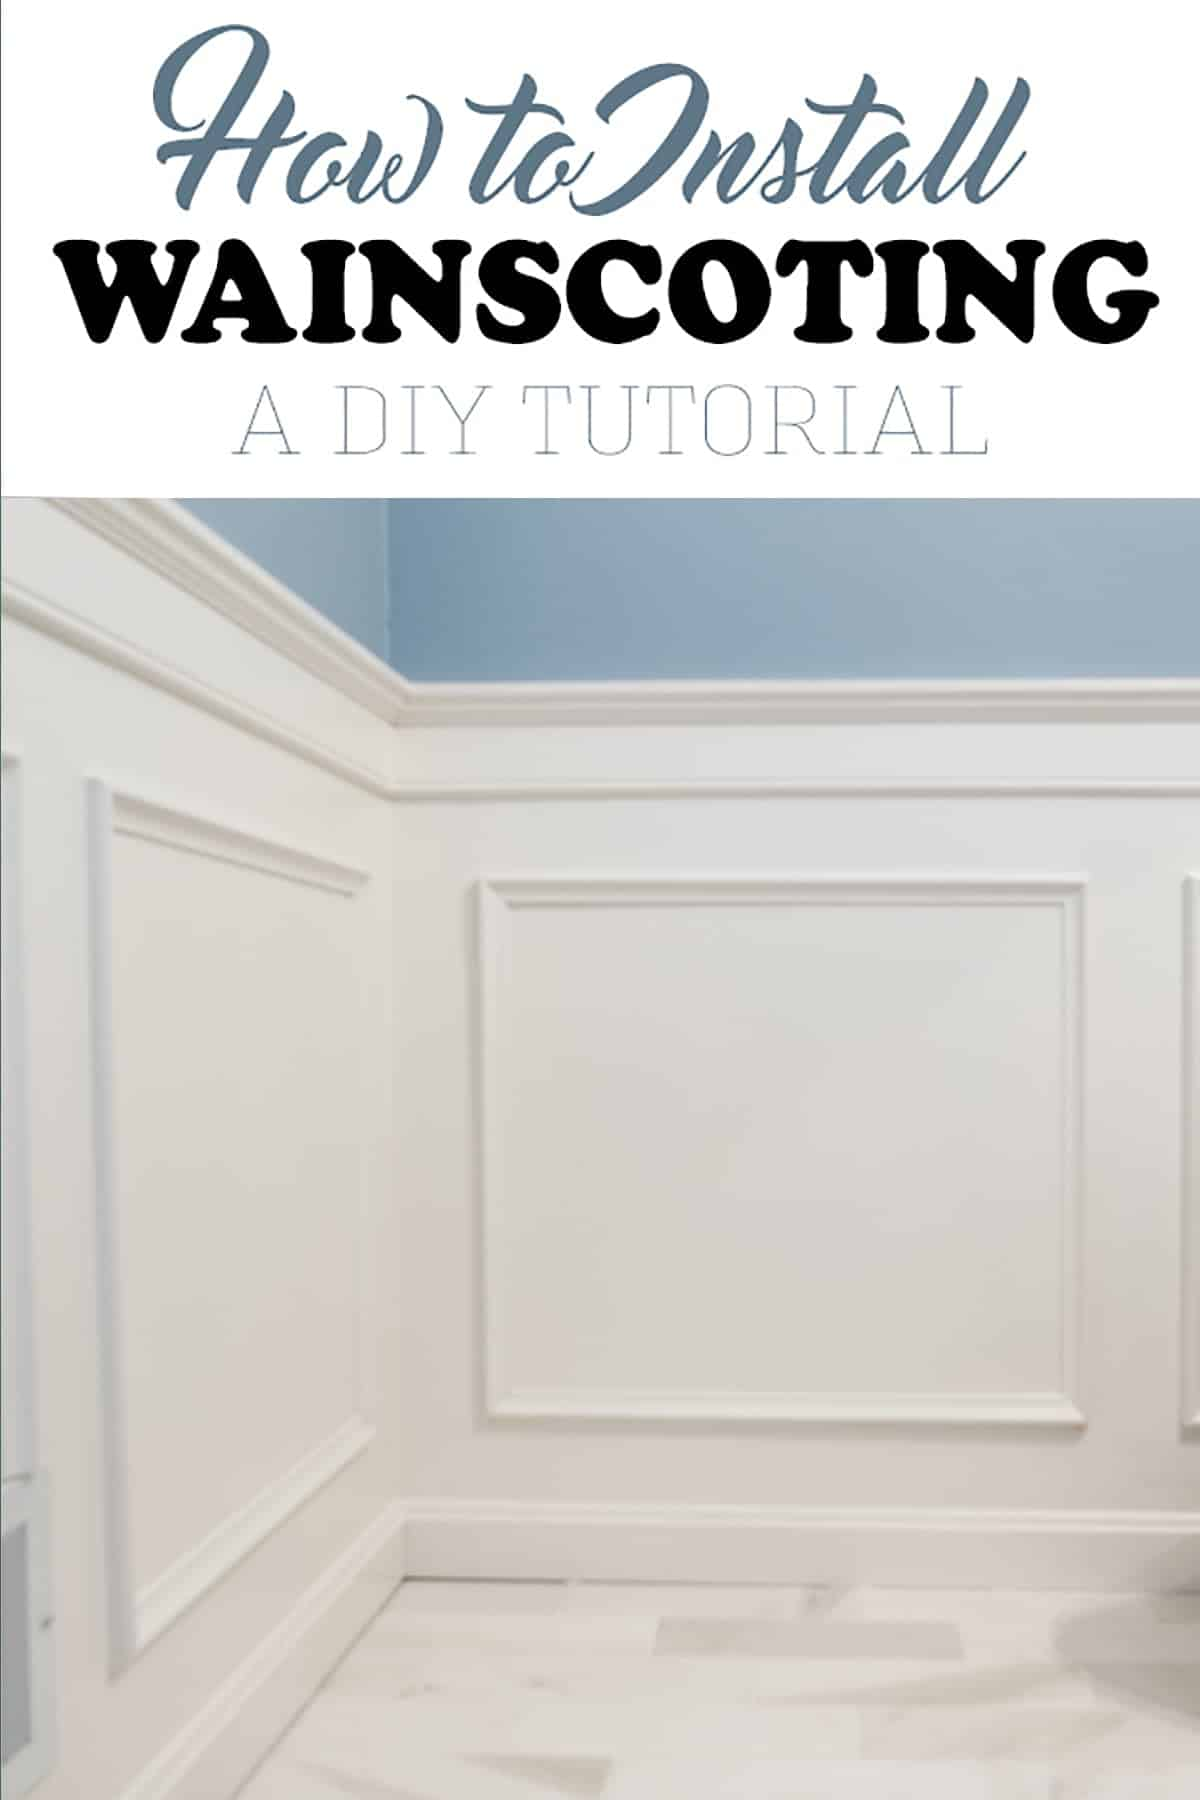 Wainscotting tutorial, DIY home improvement, DIY home projects, wood working, wall installations, interior design